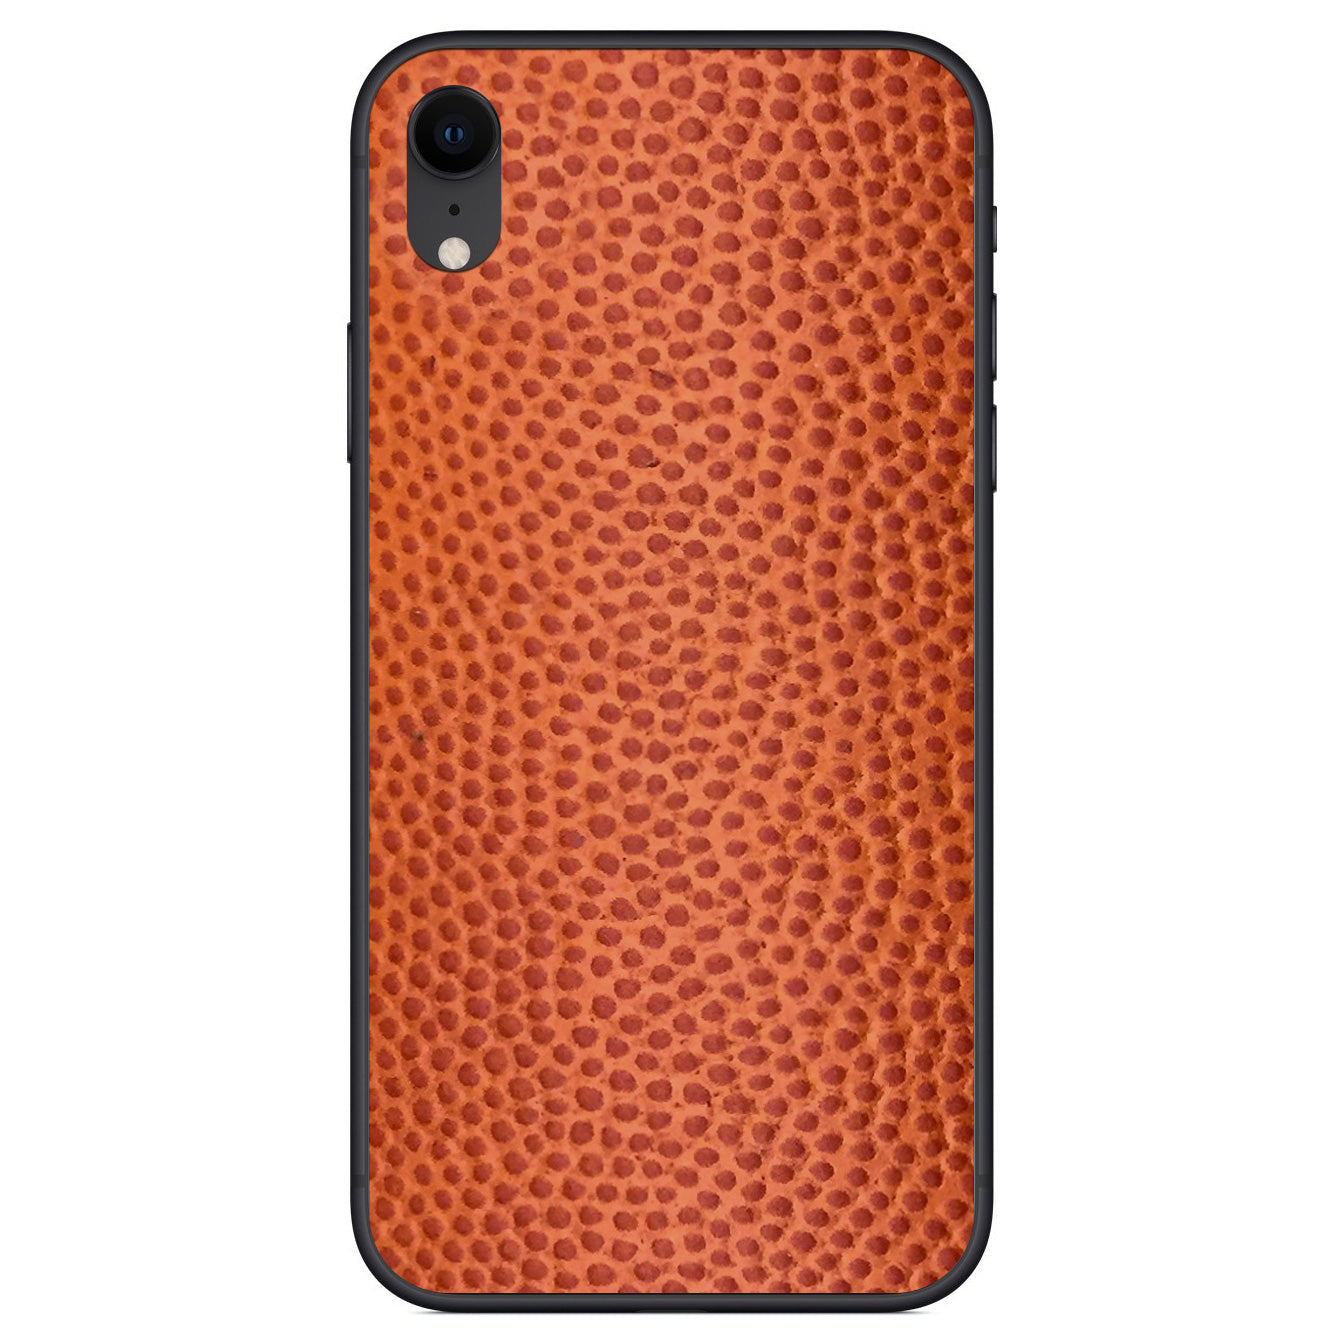 Horween Basketball iPhone XR Leather Skin